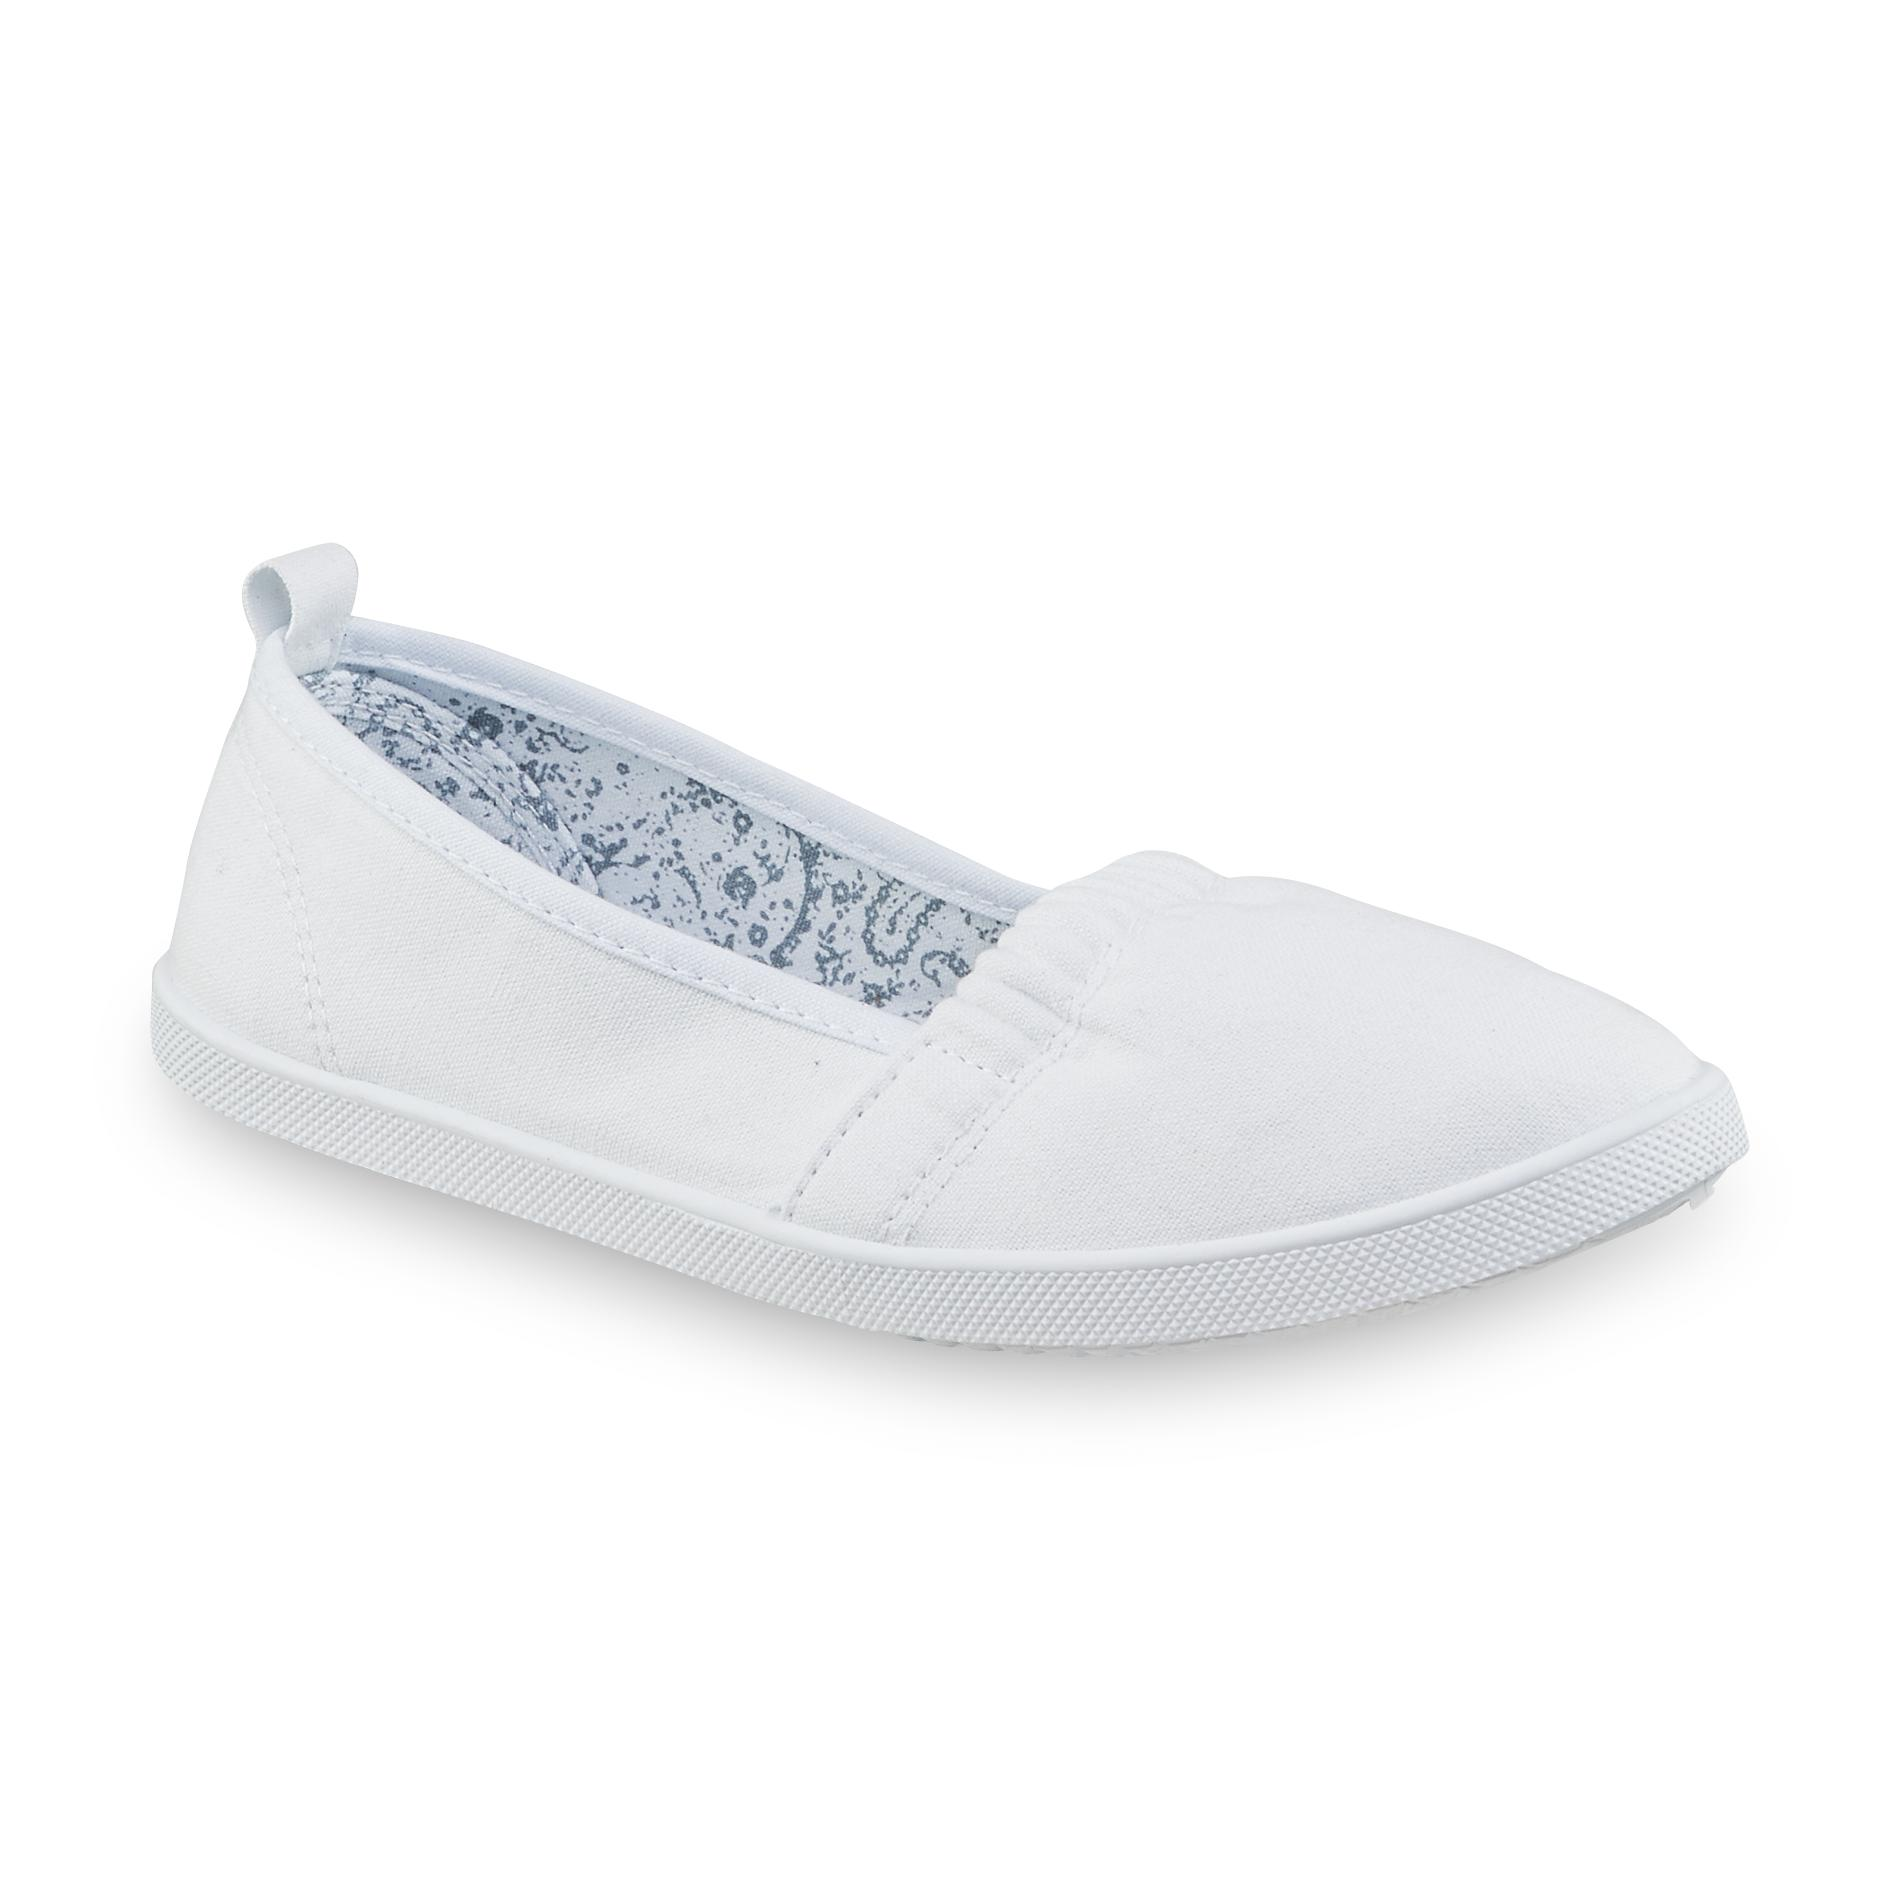 Kmart Canvas Printing Basic Editions Women S Dakota White Casual Slip On Shoe